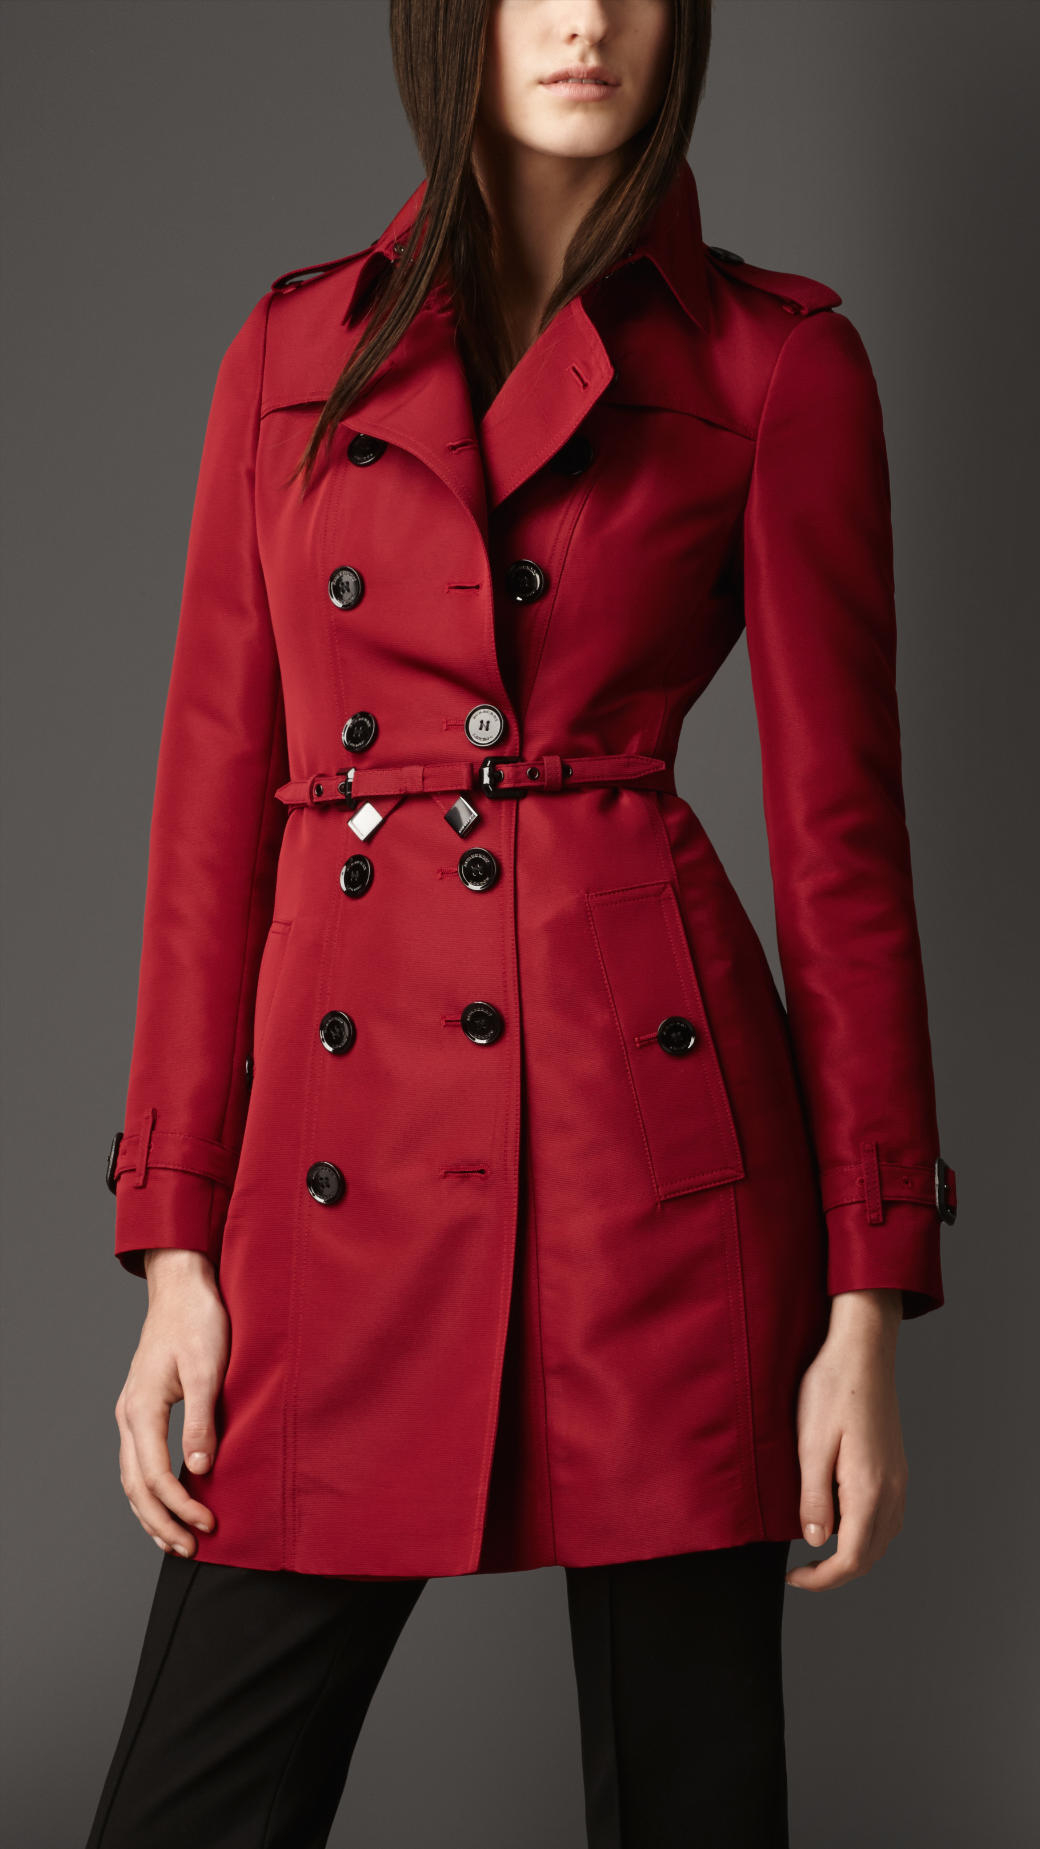 burberry midlength silkblend faille trench coat in red. Black Bedroom Furniture Sets. Home Design Ideas